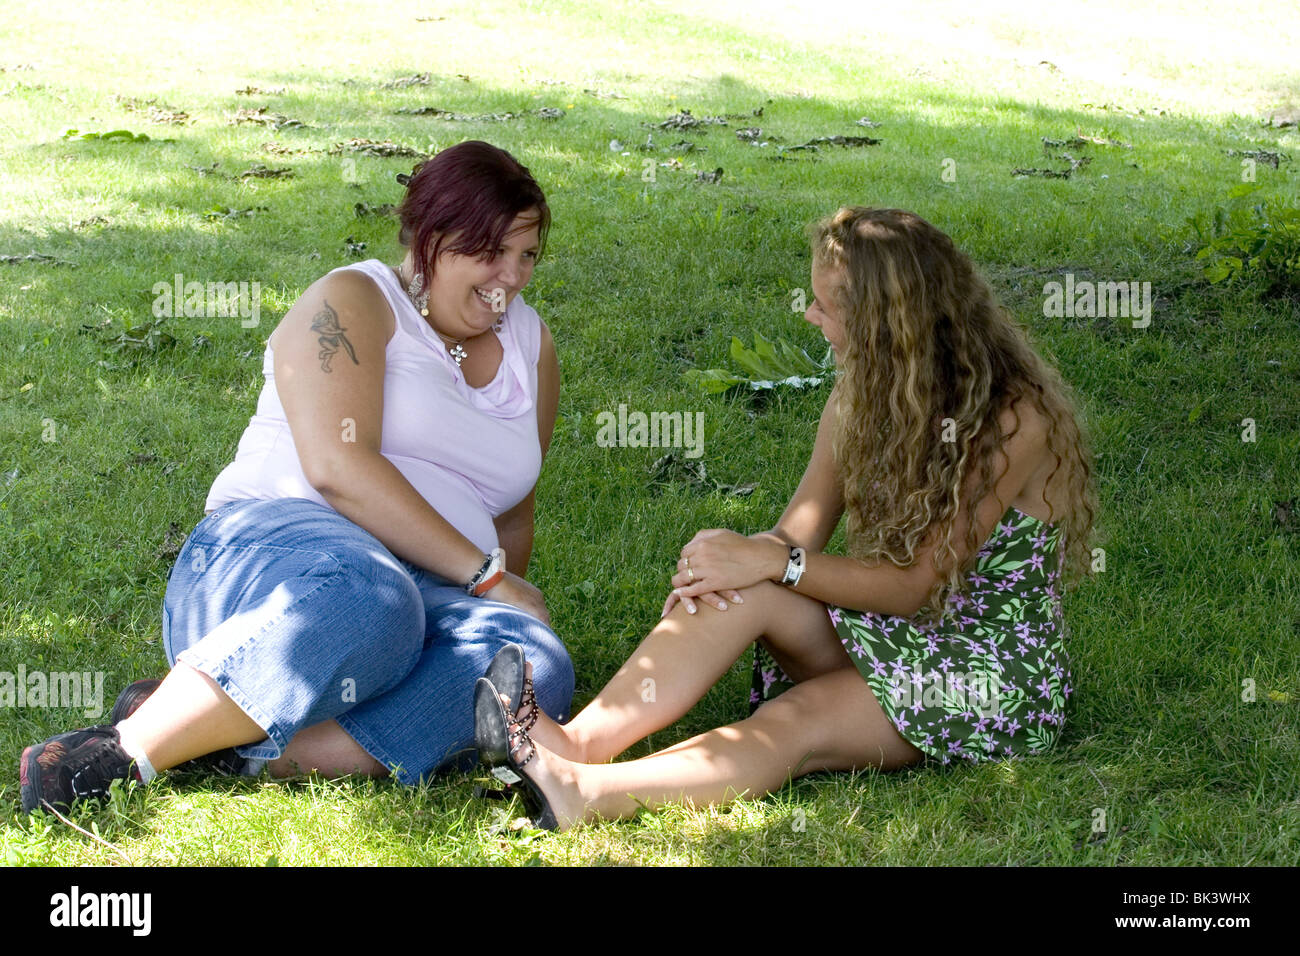 Slim and obese young women chatting in park, Shootcvs617001 - Stock Image